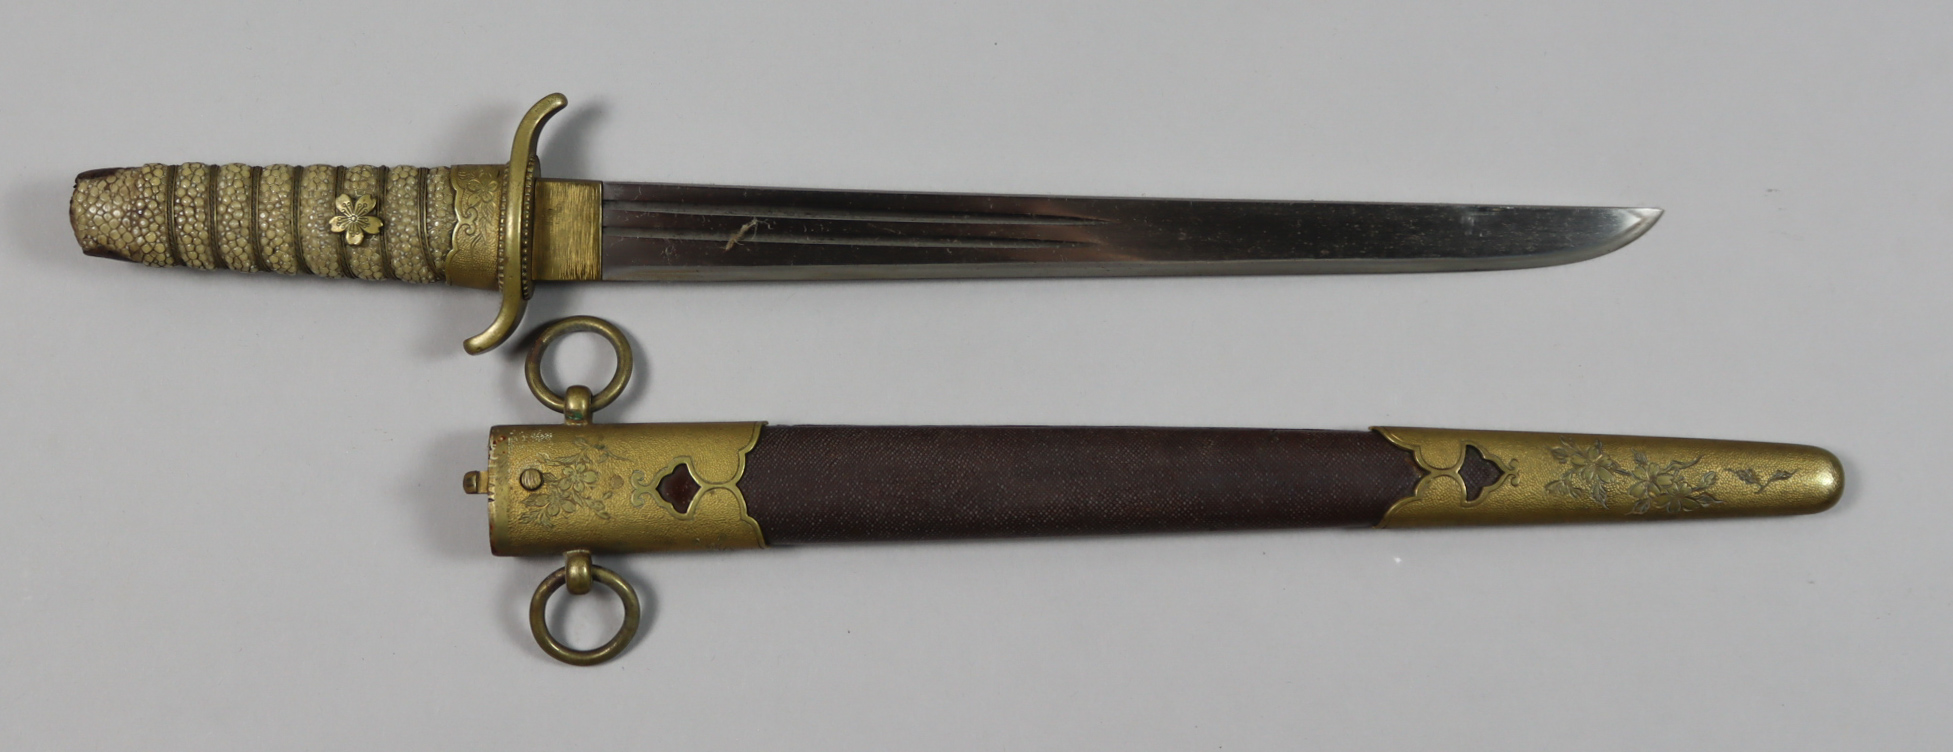 A Japanese Naval Dirk, Atypically wide blade with two fullers